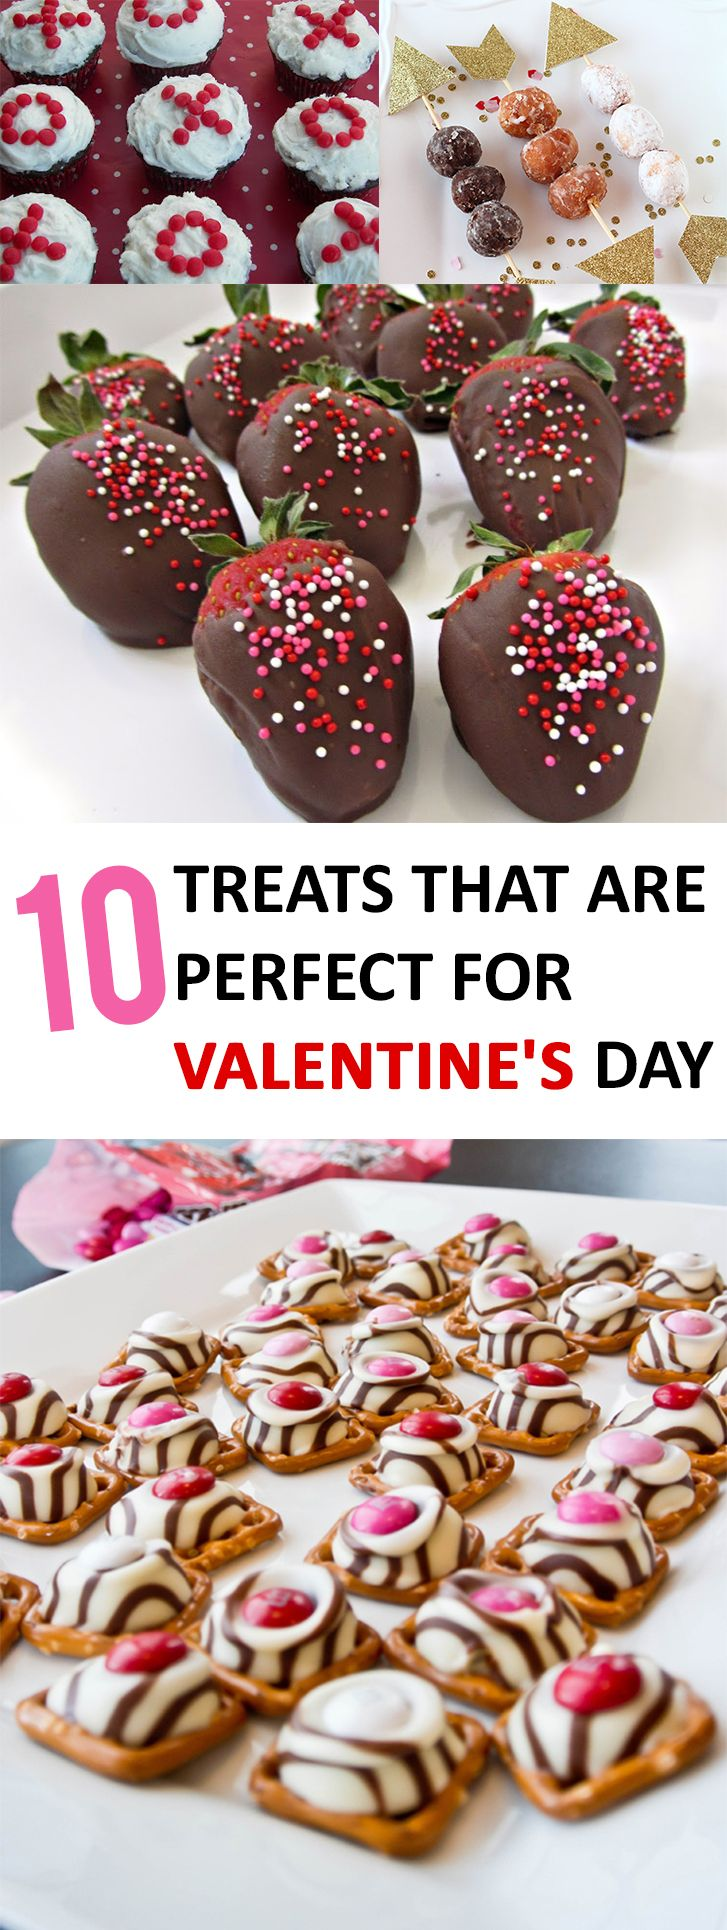 10 Treats that are Perfect for Valentine's Day – Sunlit Spaces | DIY Home Decor, Holiday, and More